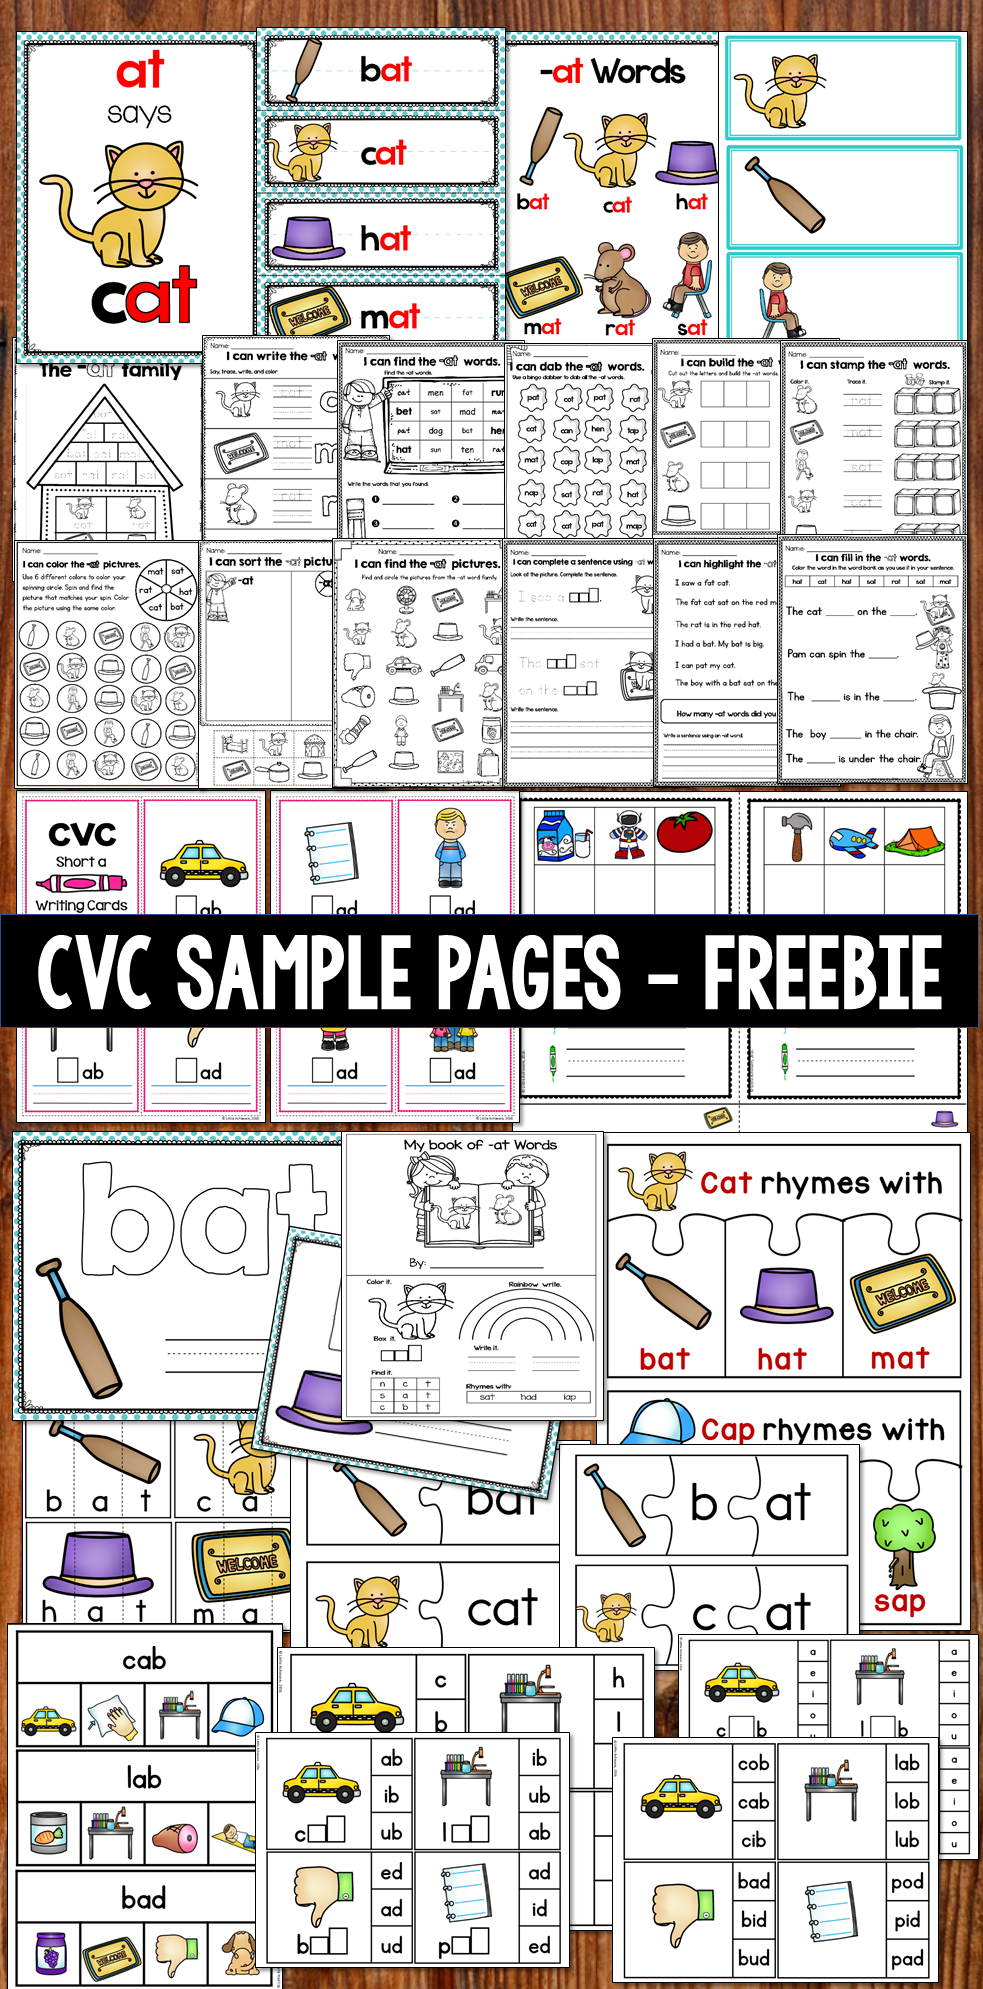 Free CVC word activities and worksheets | TpT FREE LESSONS ...